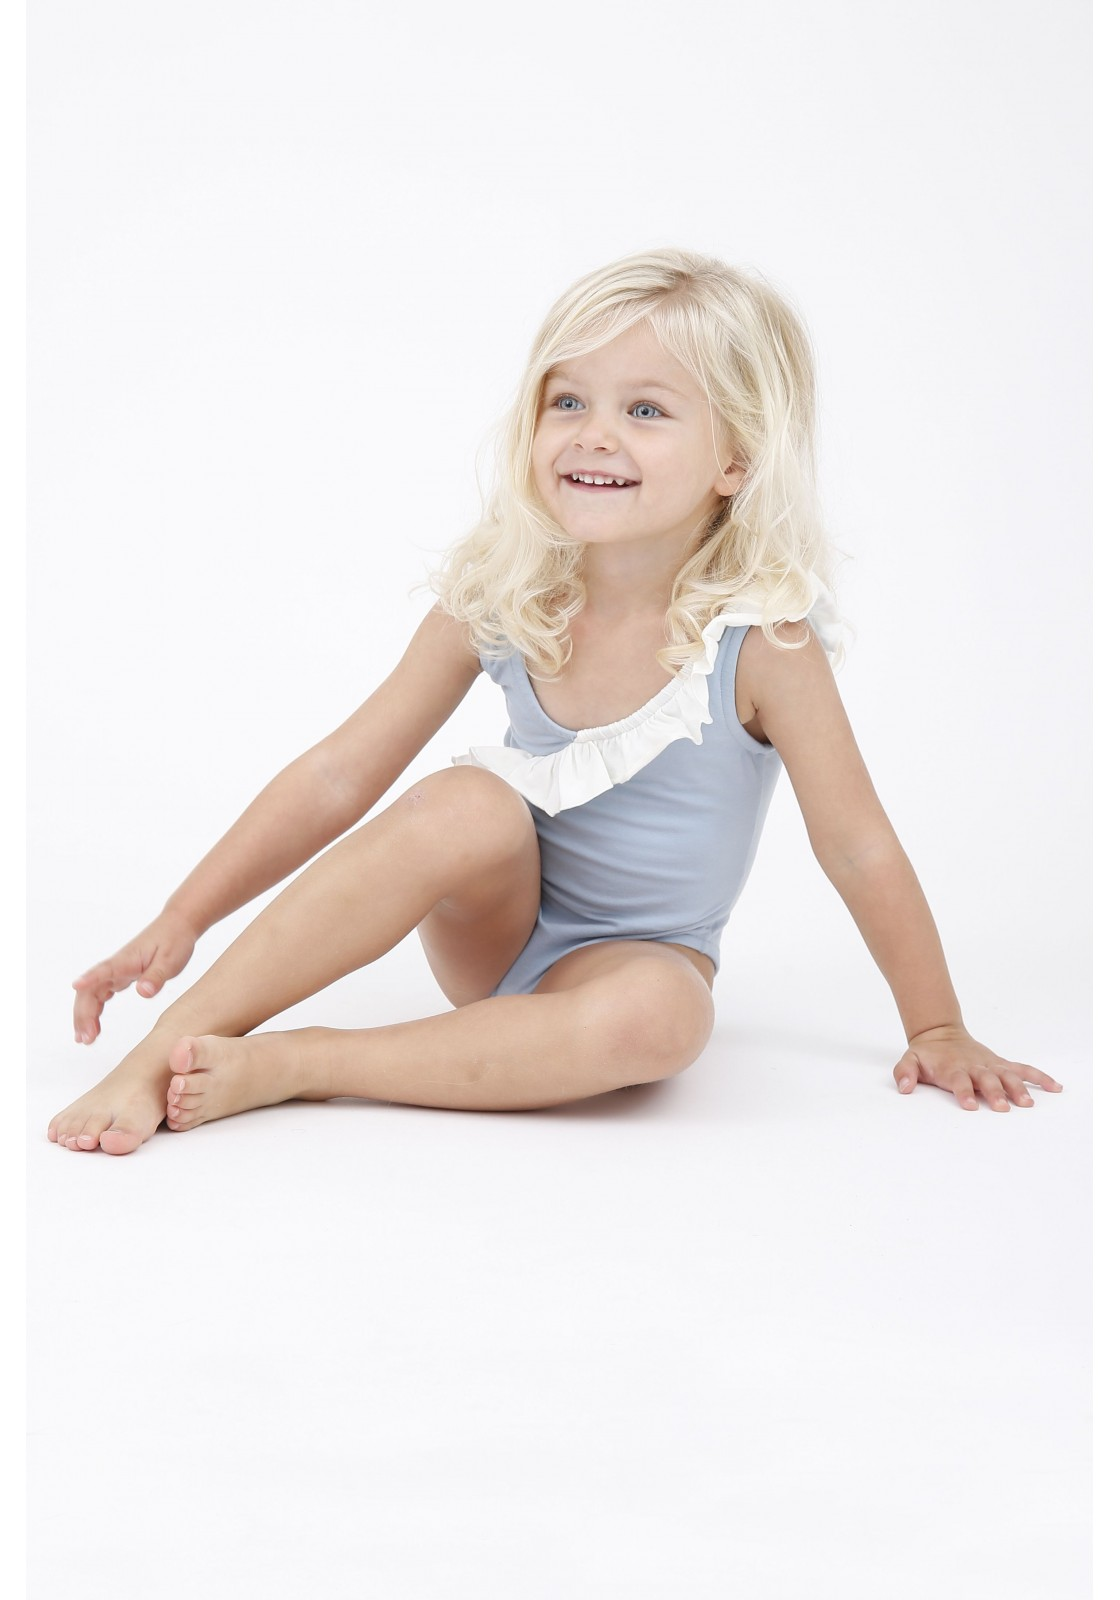 Julia Babyone Piece And White In For Blue Little Swimsuit Girl Sugar TJKlF1c